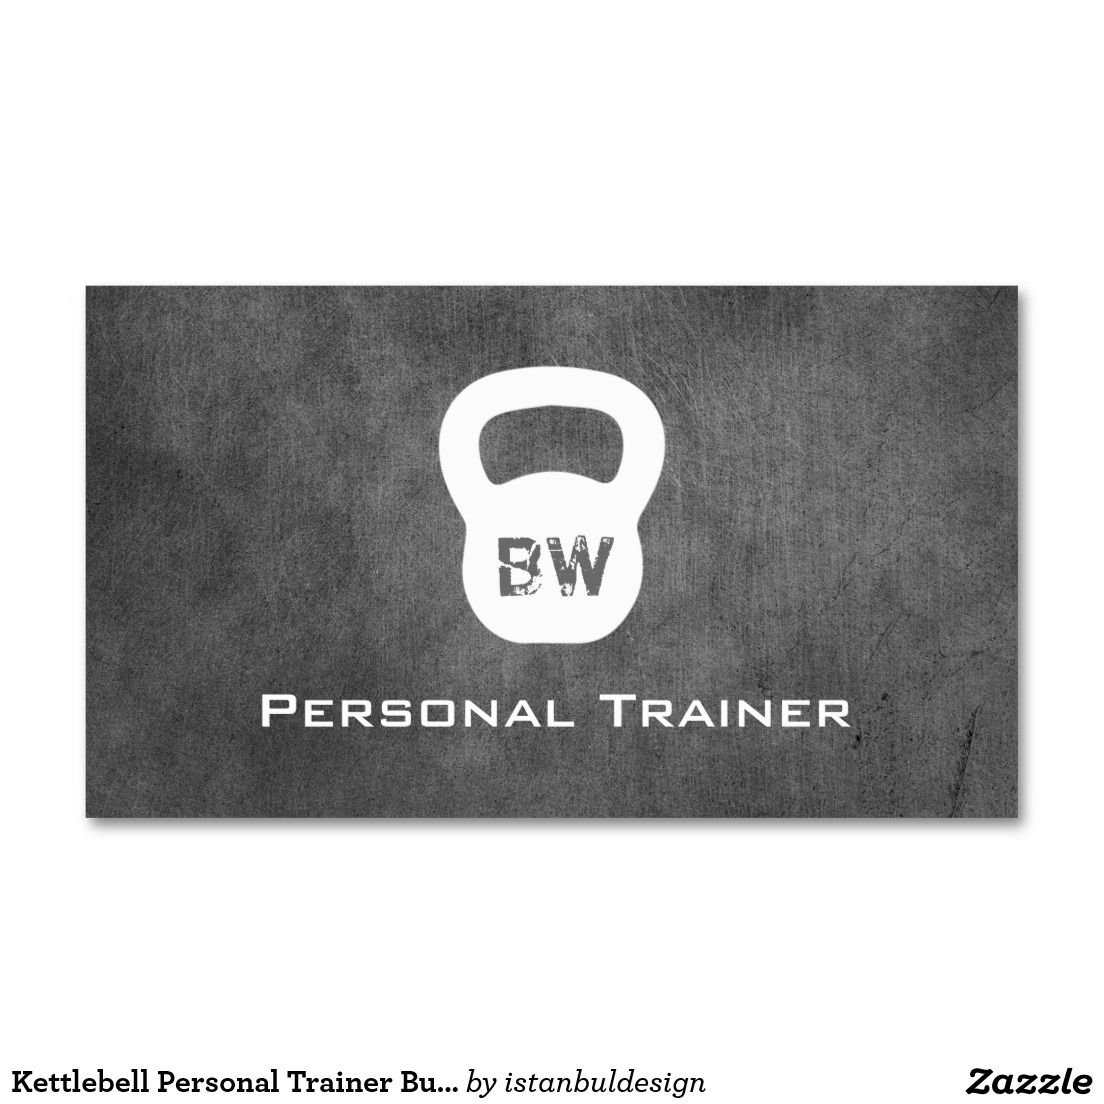 Kettlebell Personal Trainer Business Card | Personal trainer ...